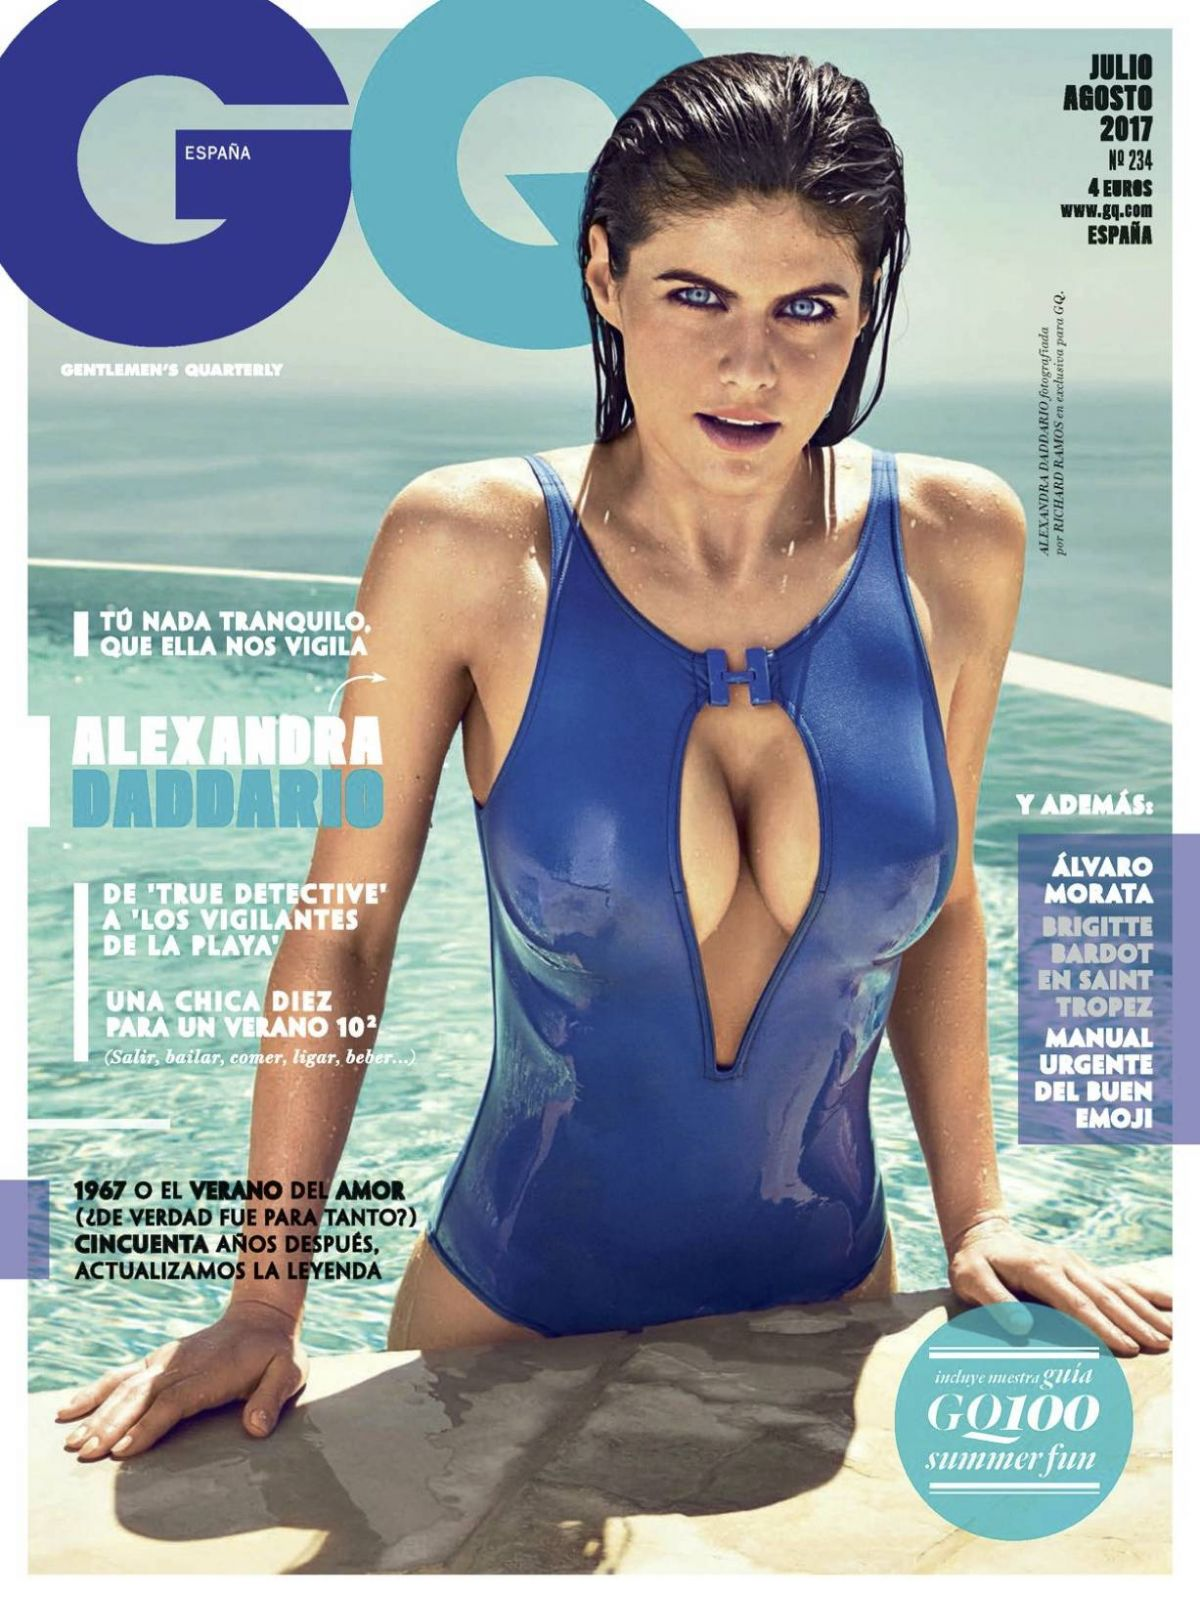 ALEXANDRA DADDARIO in GQ Magazine, Spain July/August 2017